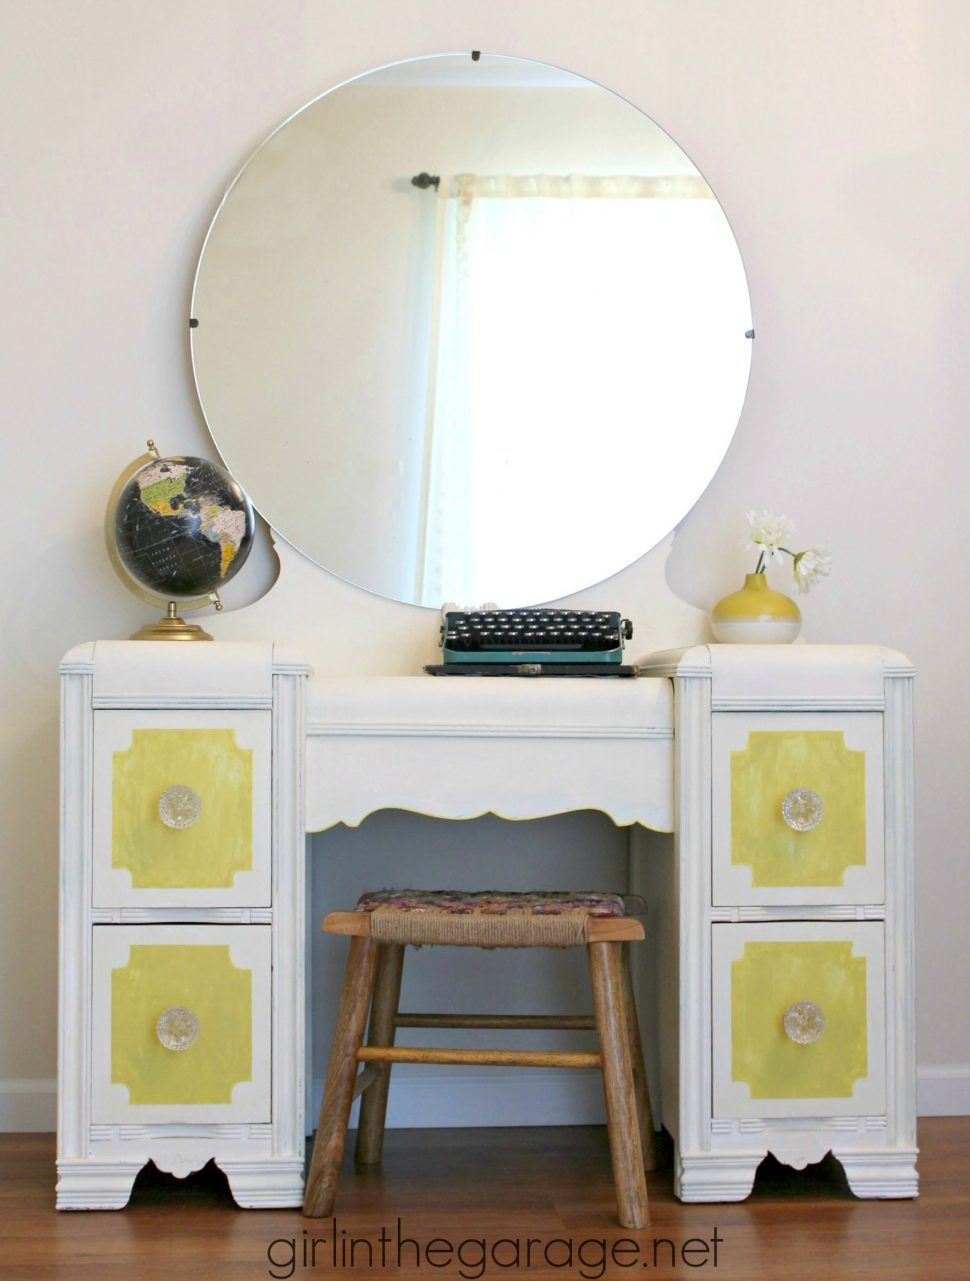 Bedroom Furniture Magnifying Mirrors Makeup Organization Intended For Illuminated Dressing Table Mirrors (Image 2 of 15)